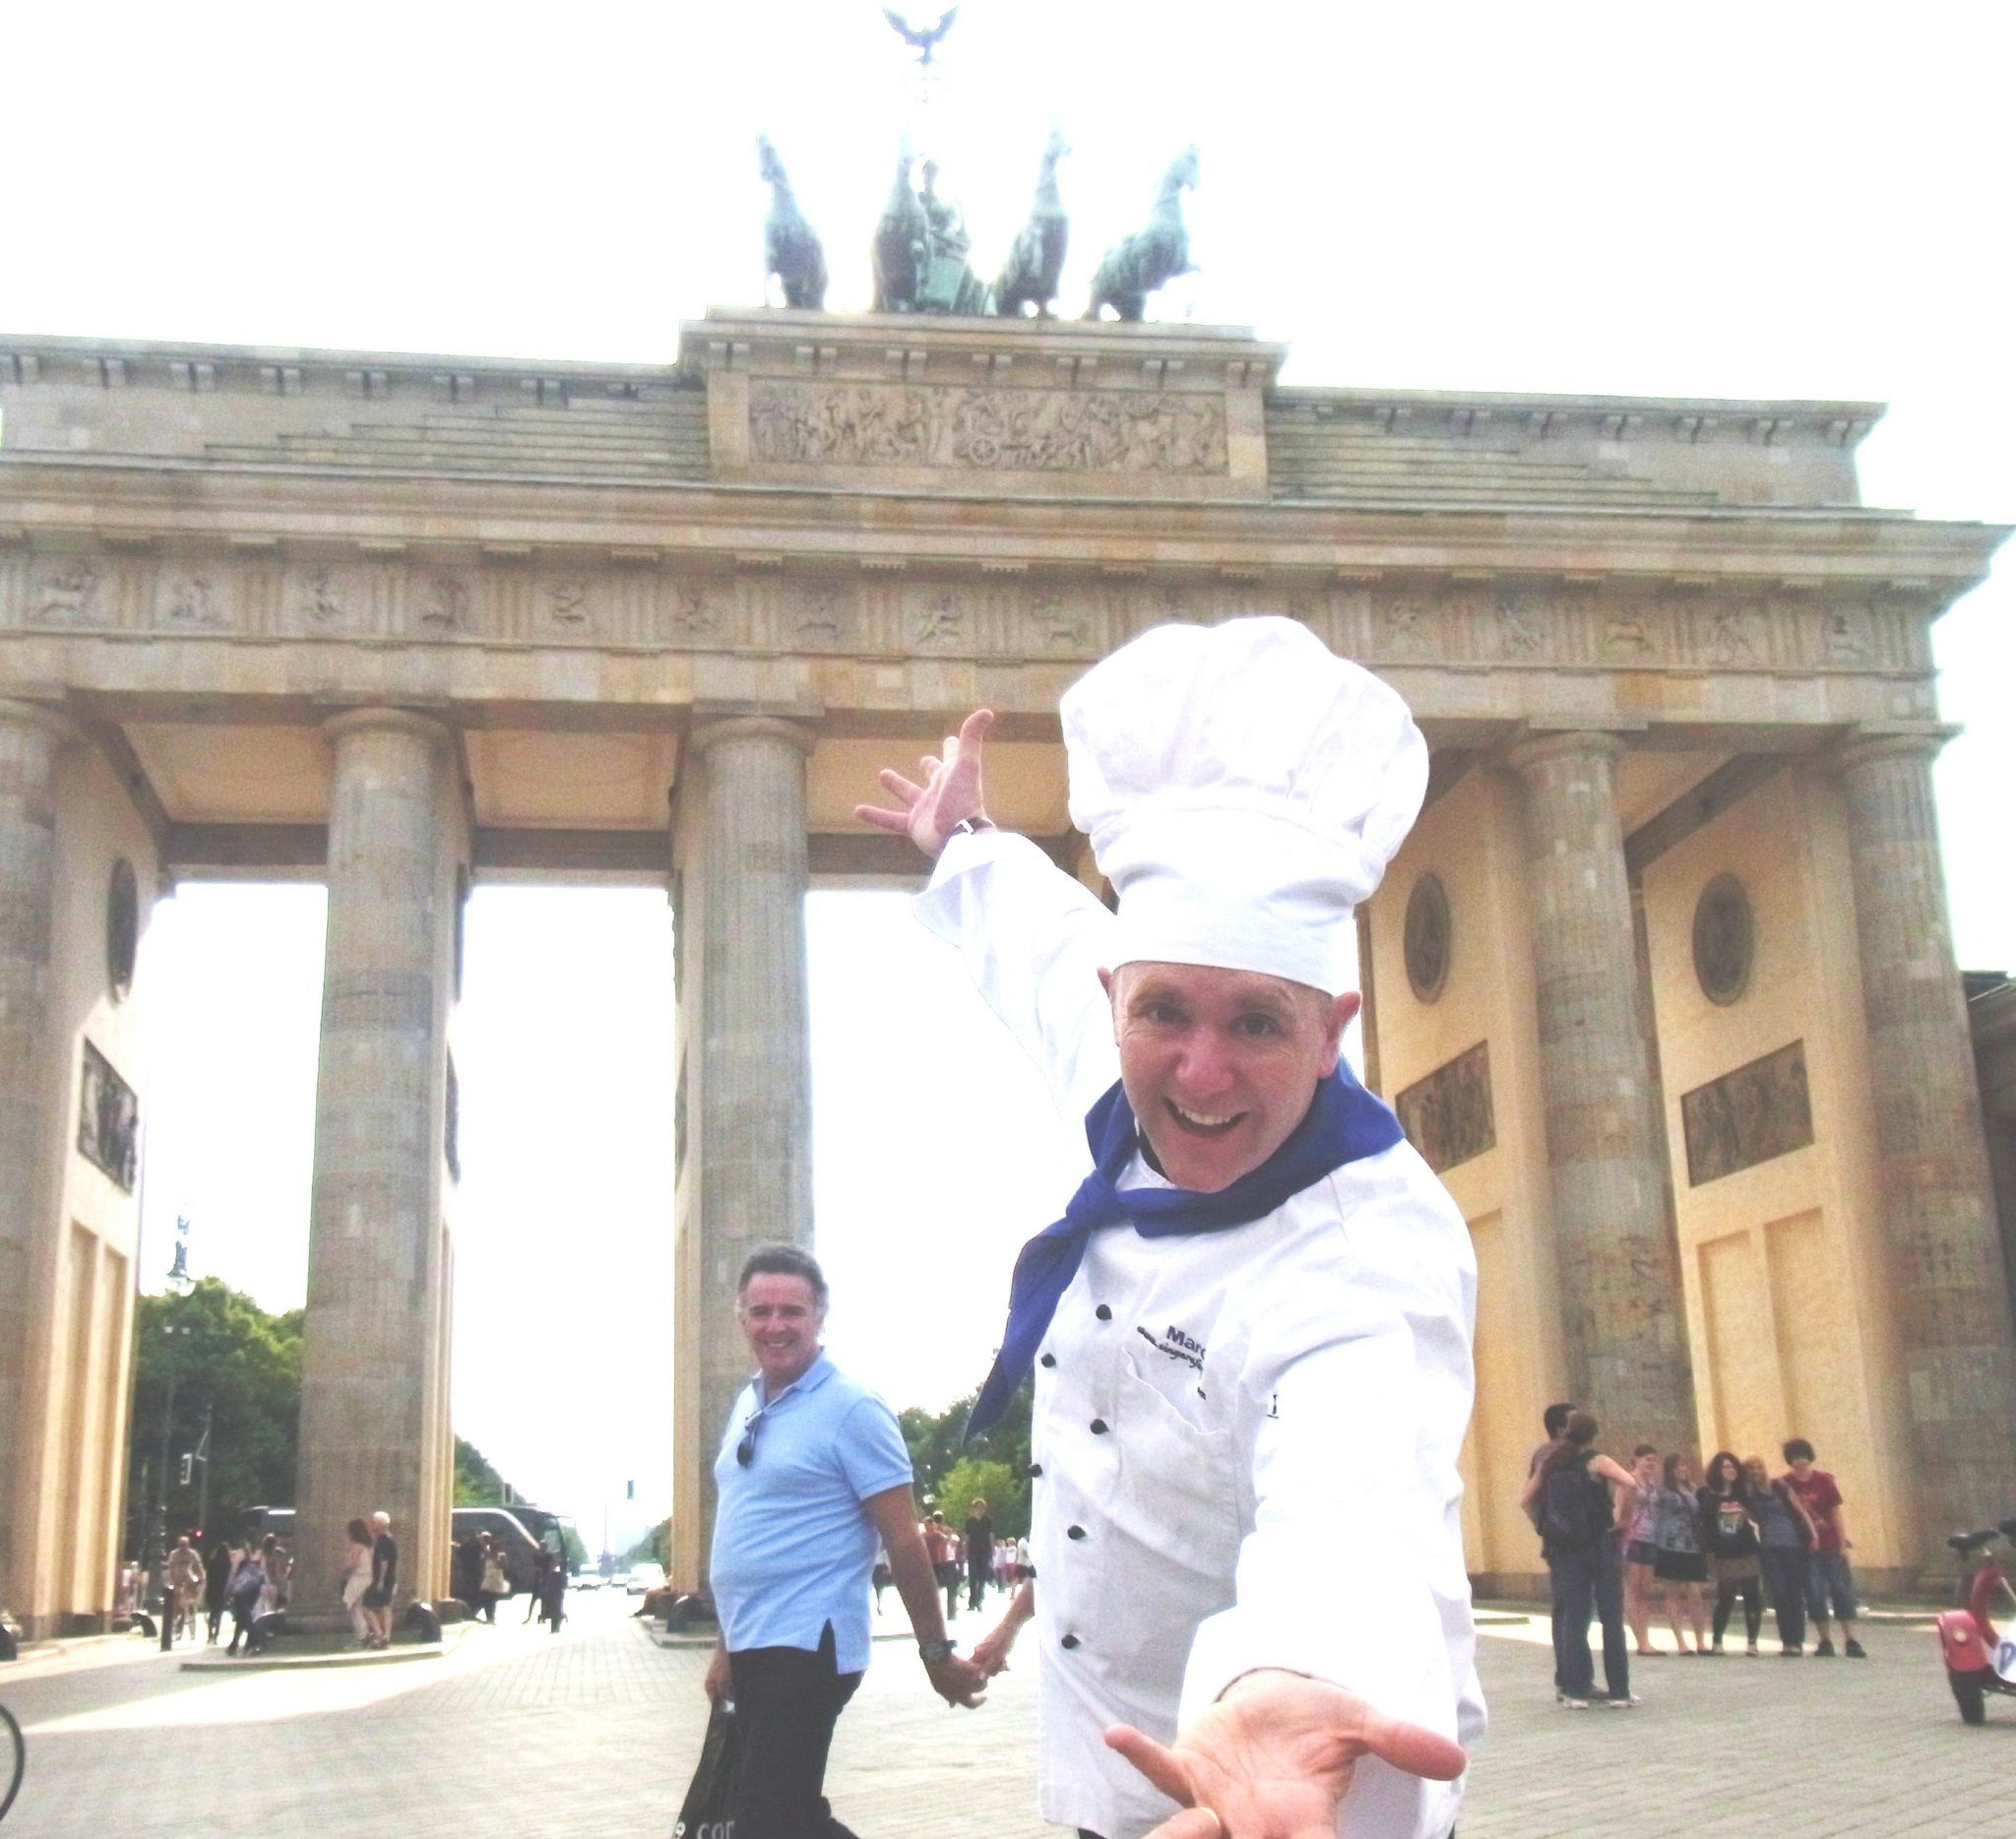 Marco the singing chef in Berlin, Germany